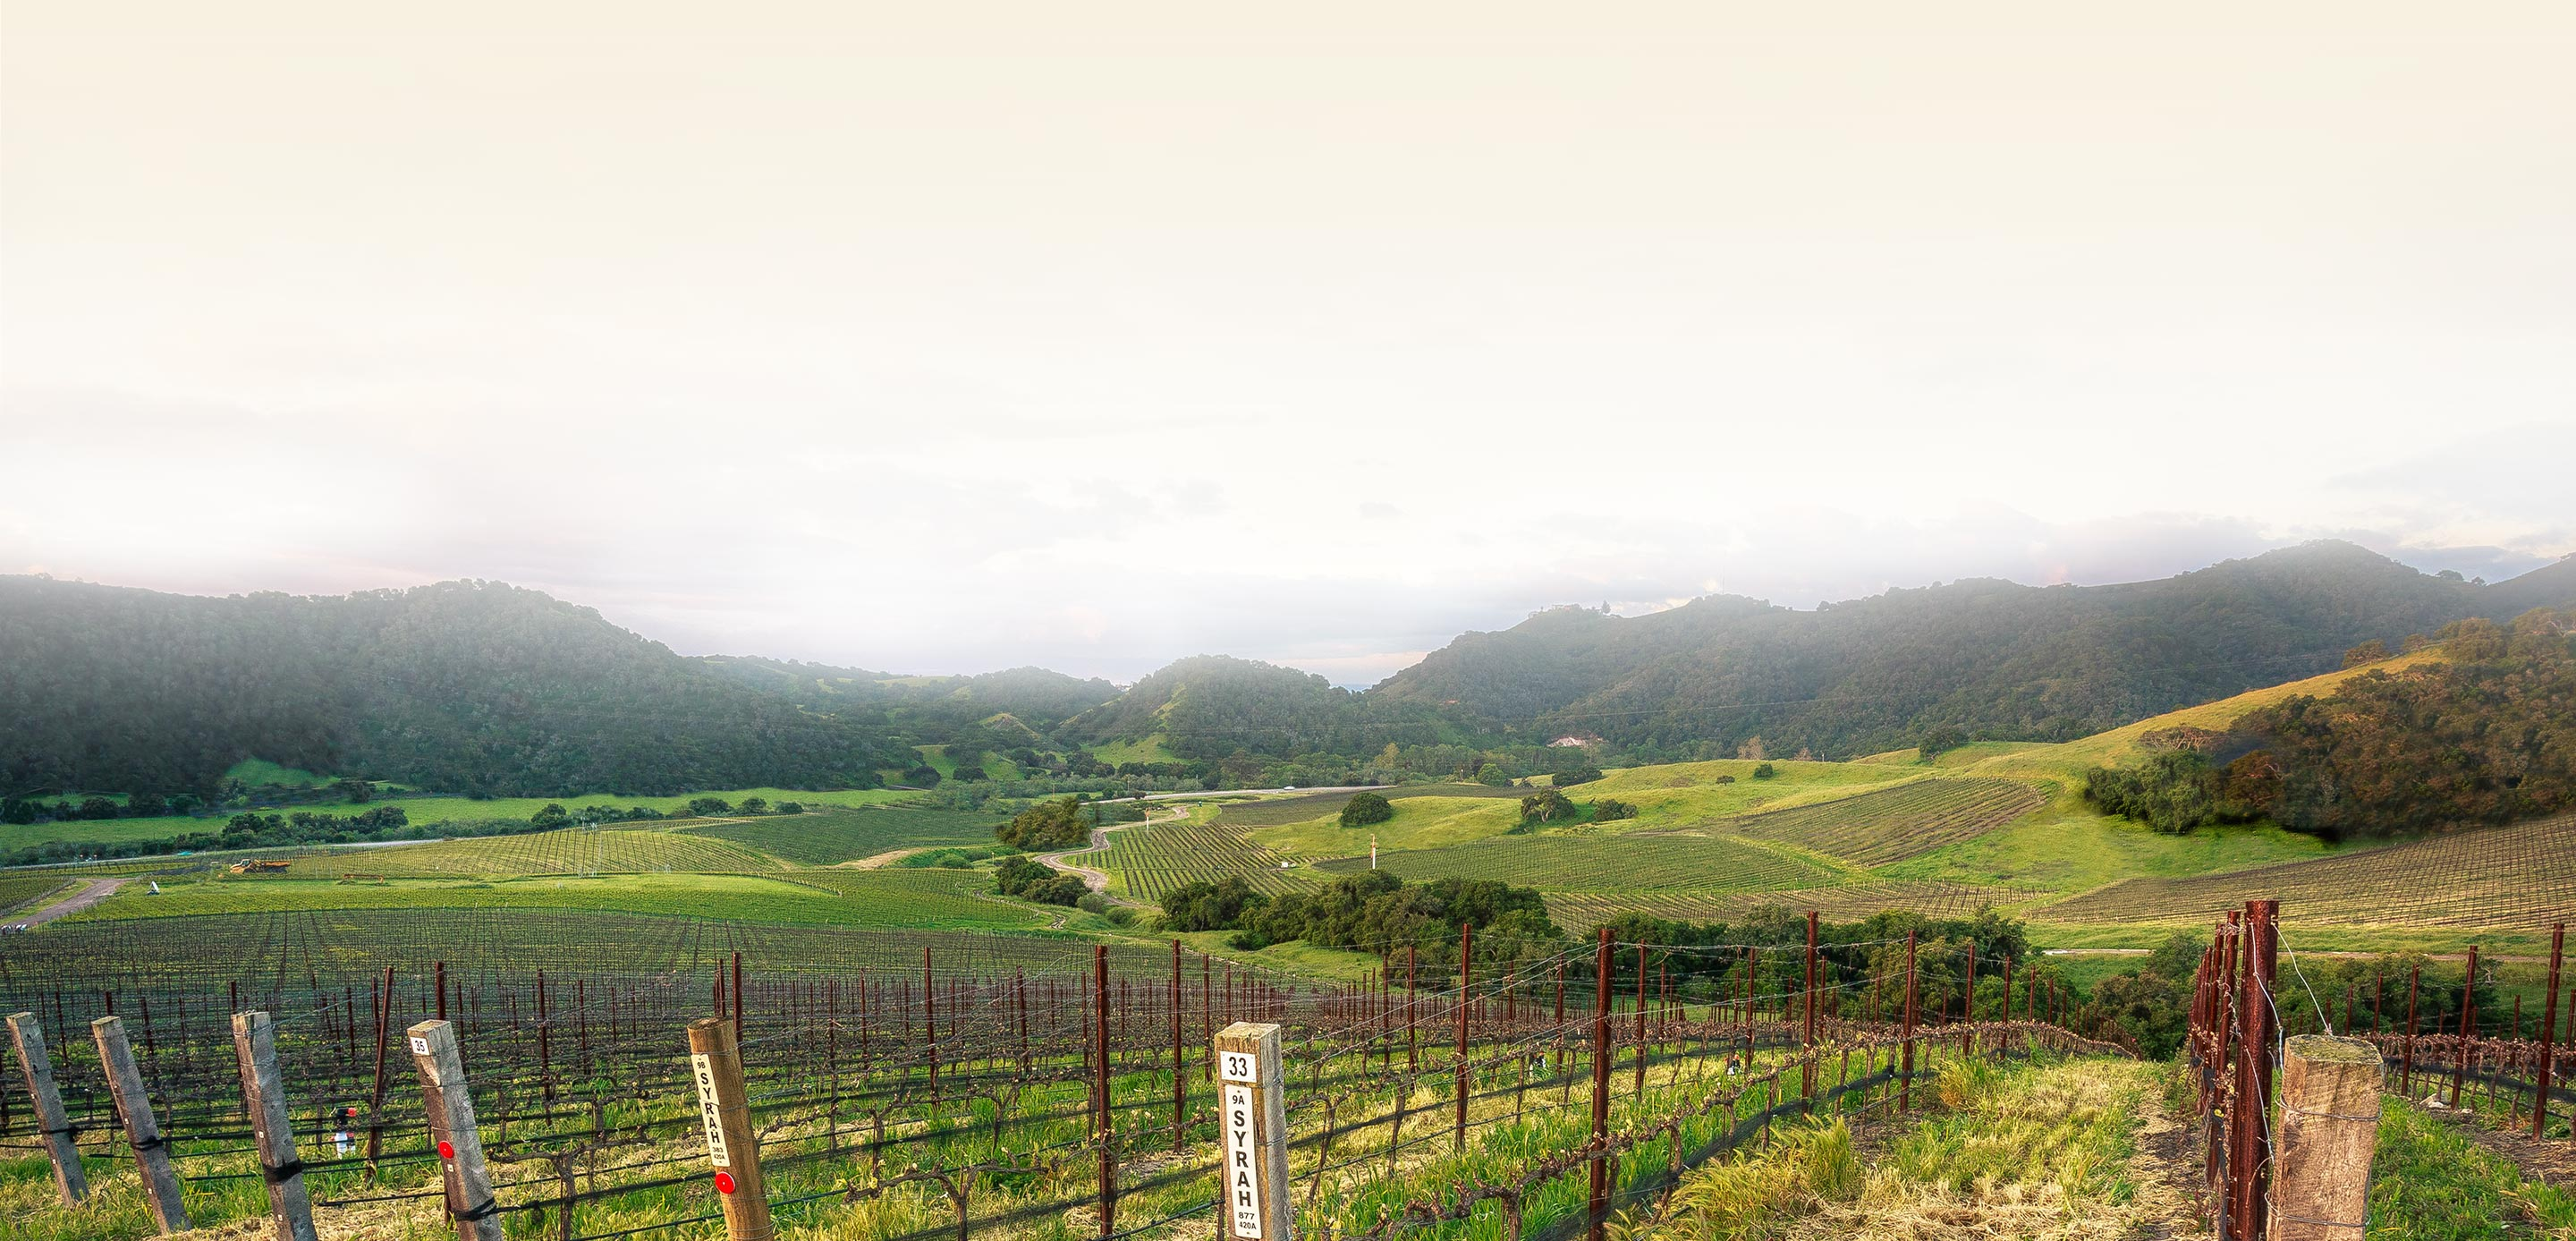 Panoramic view of vineyards, hills, and mountains